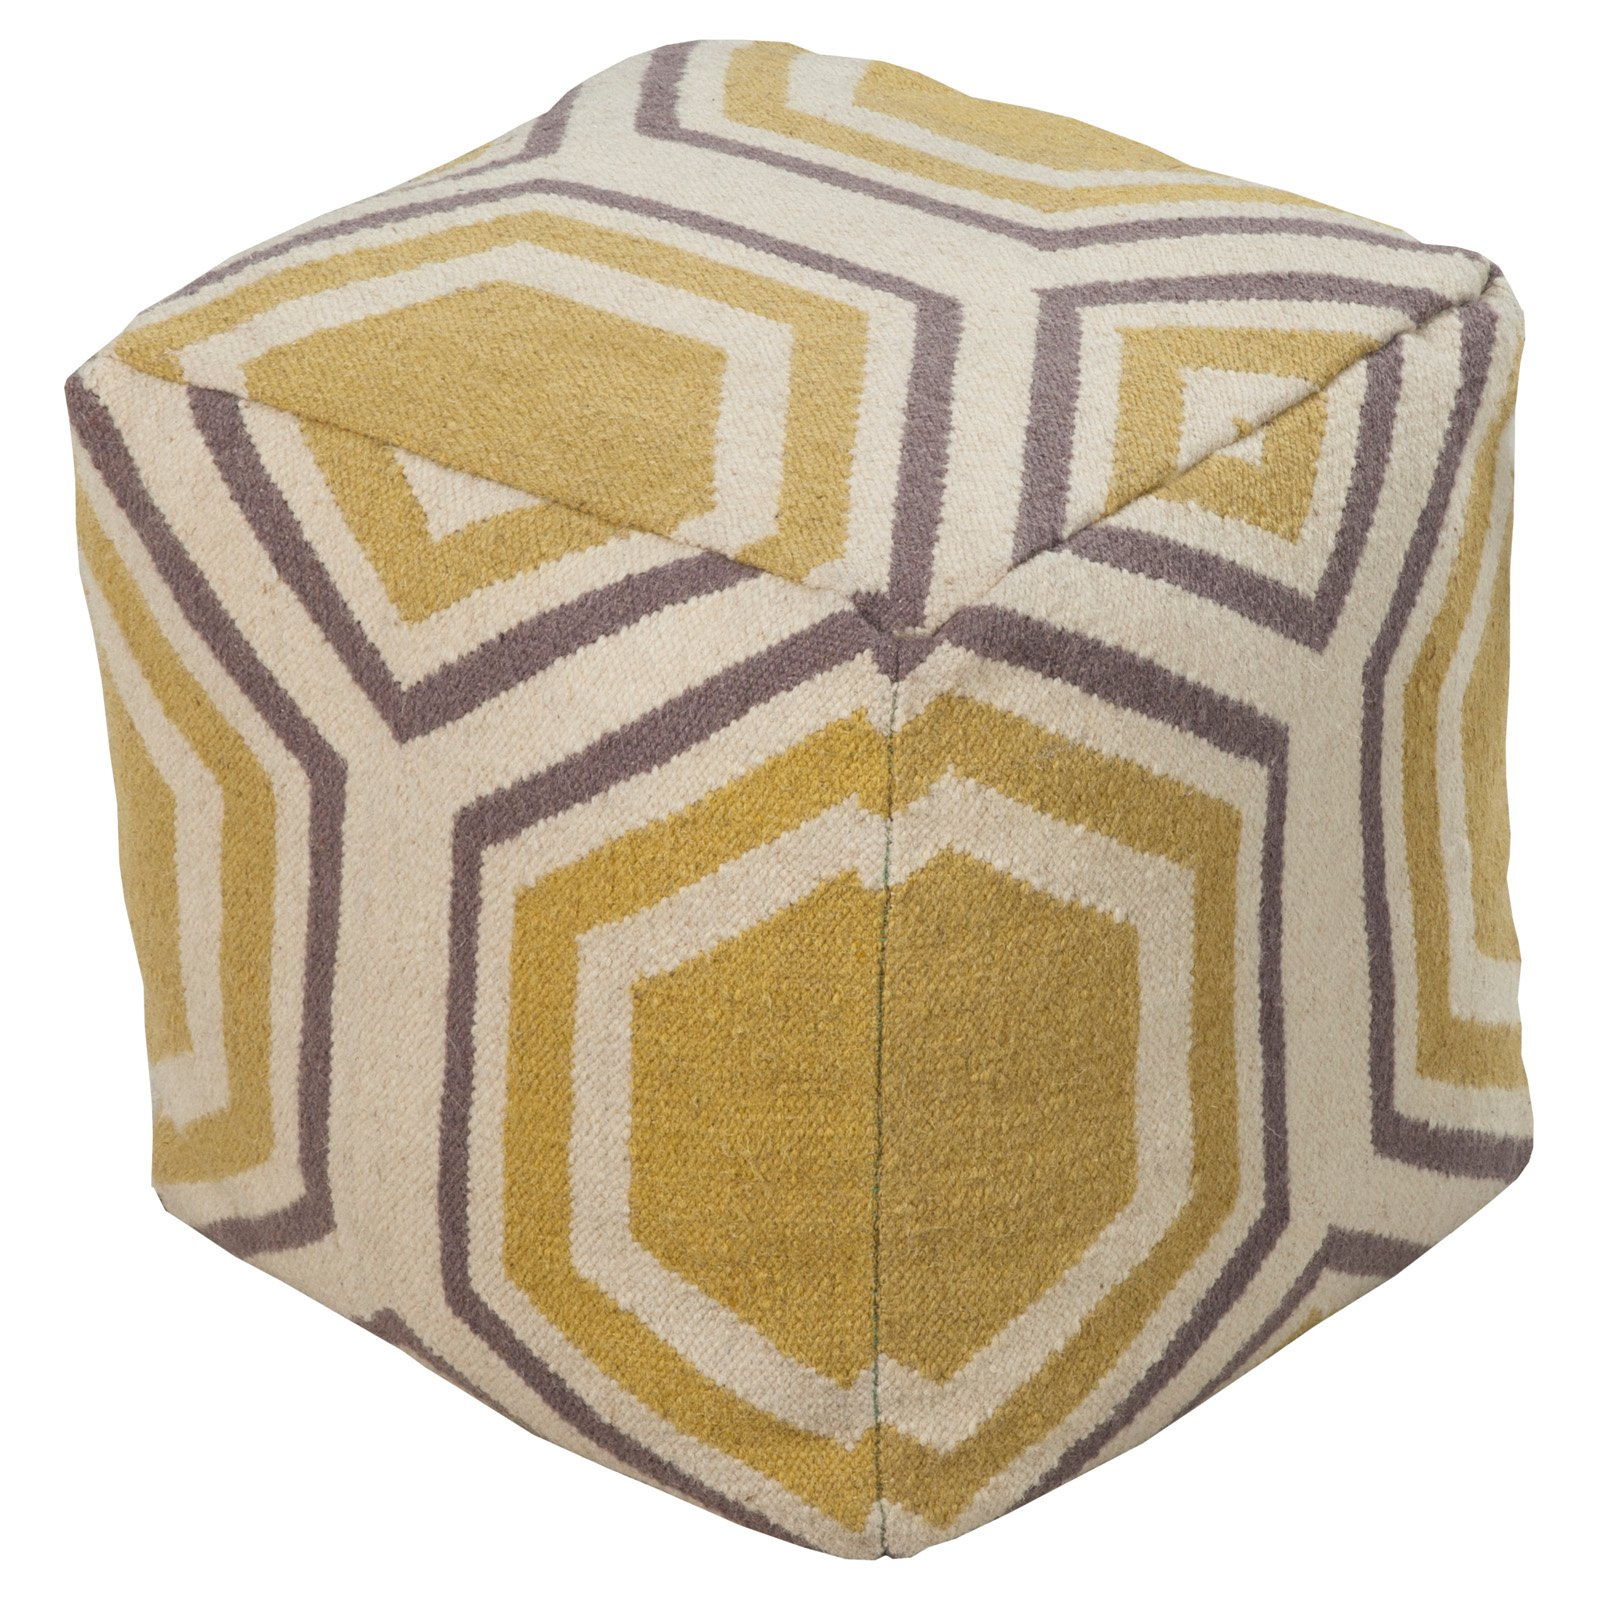 Surya 18 in. Cube Wool Pouf Ivory   Parsnip by Surya